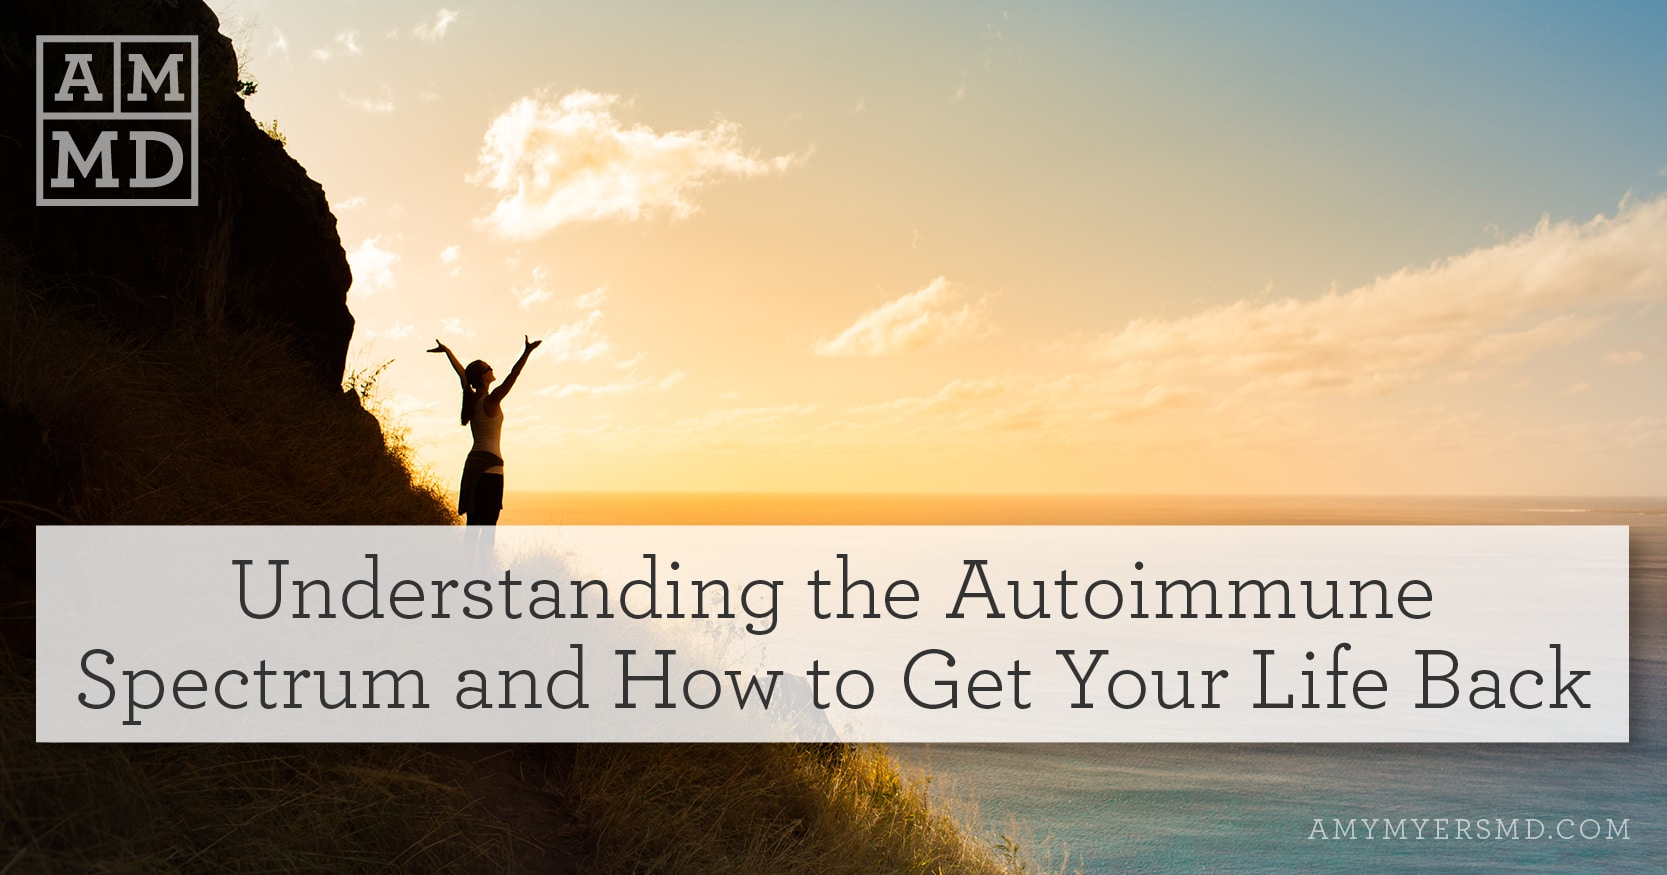 Understanding The Autoimmune Spectrum and How to Get Your Life Back - A Woman Overlooking the Ocean - Featured Image - Amy Myers MD